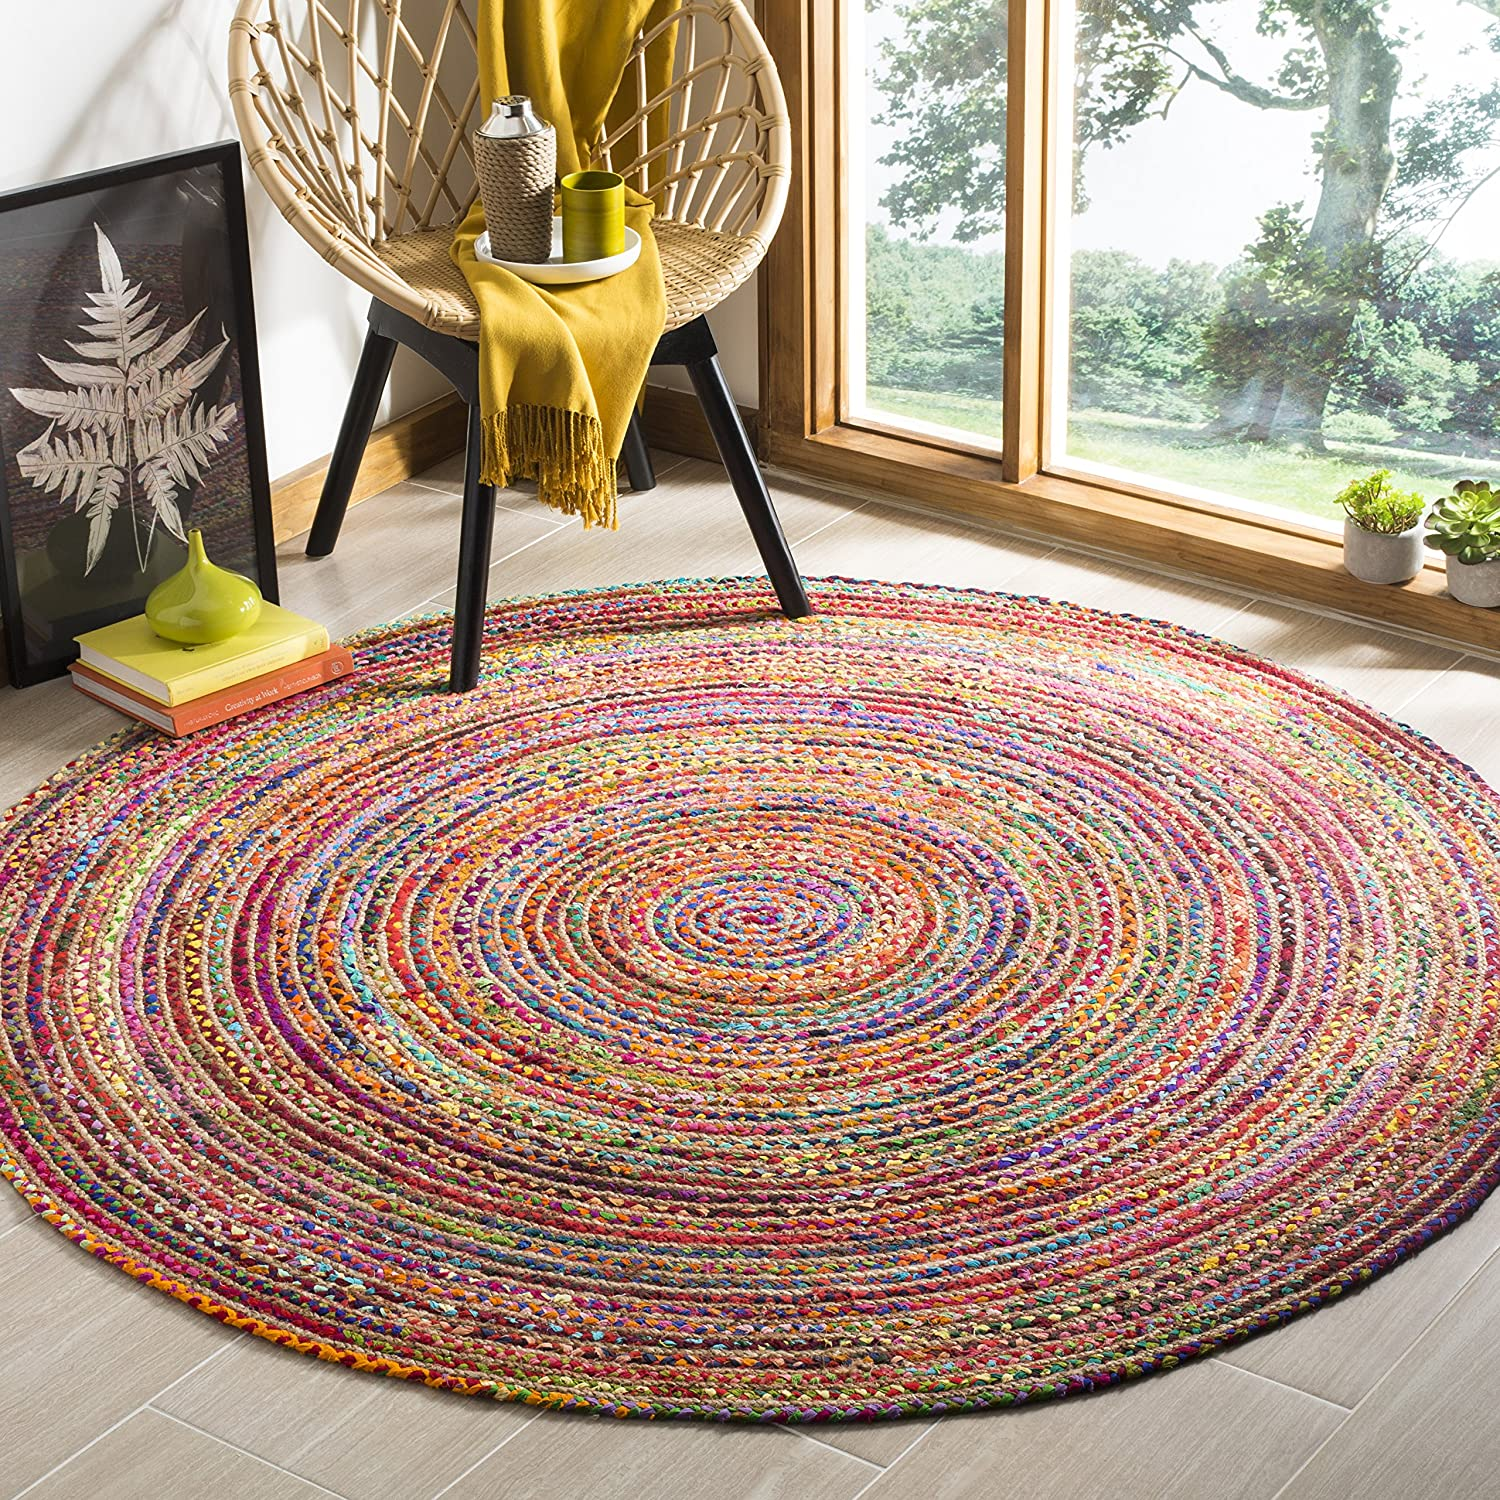 Safavieh Cape Cod Collection CAP202A Handmade Red and Multicolored Jute Round Area Rug (5' in Diameter)